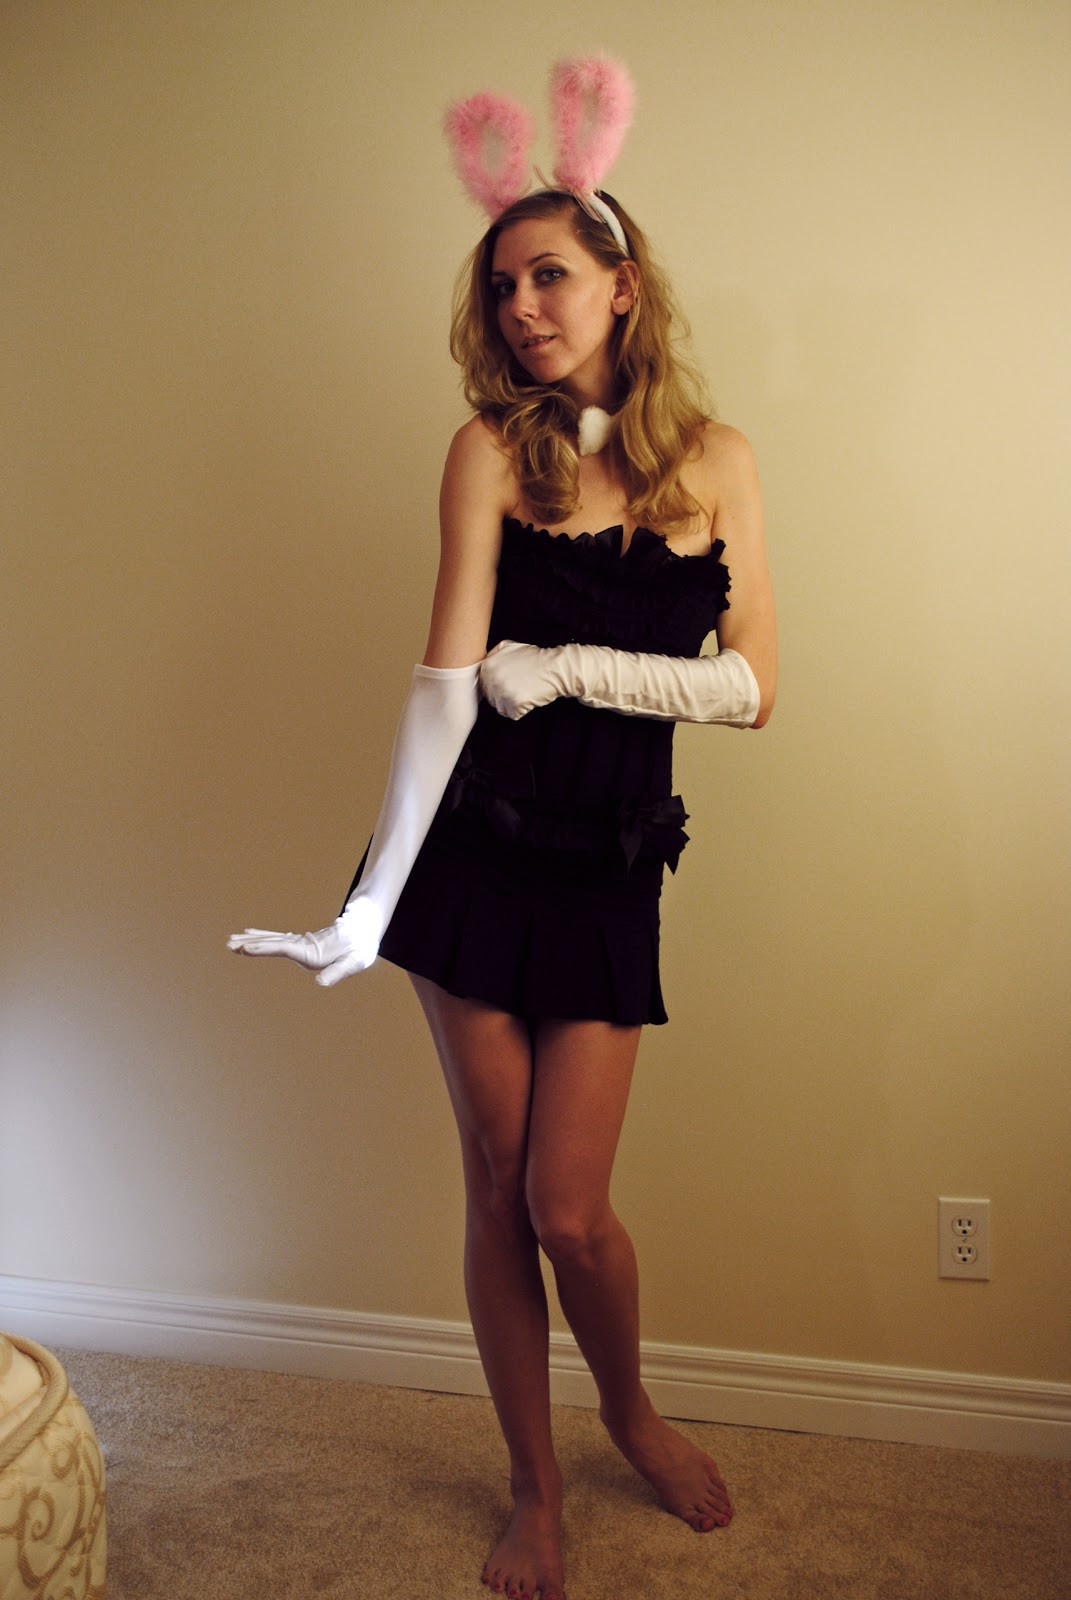 Best ideas about Women DIY Costumes . Save or Pin Catwalk Candy DIY Halloween Costume Ideas Now.